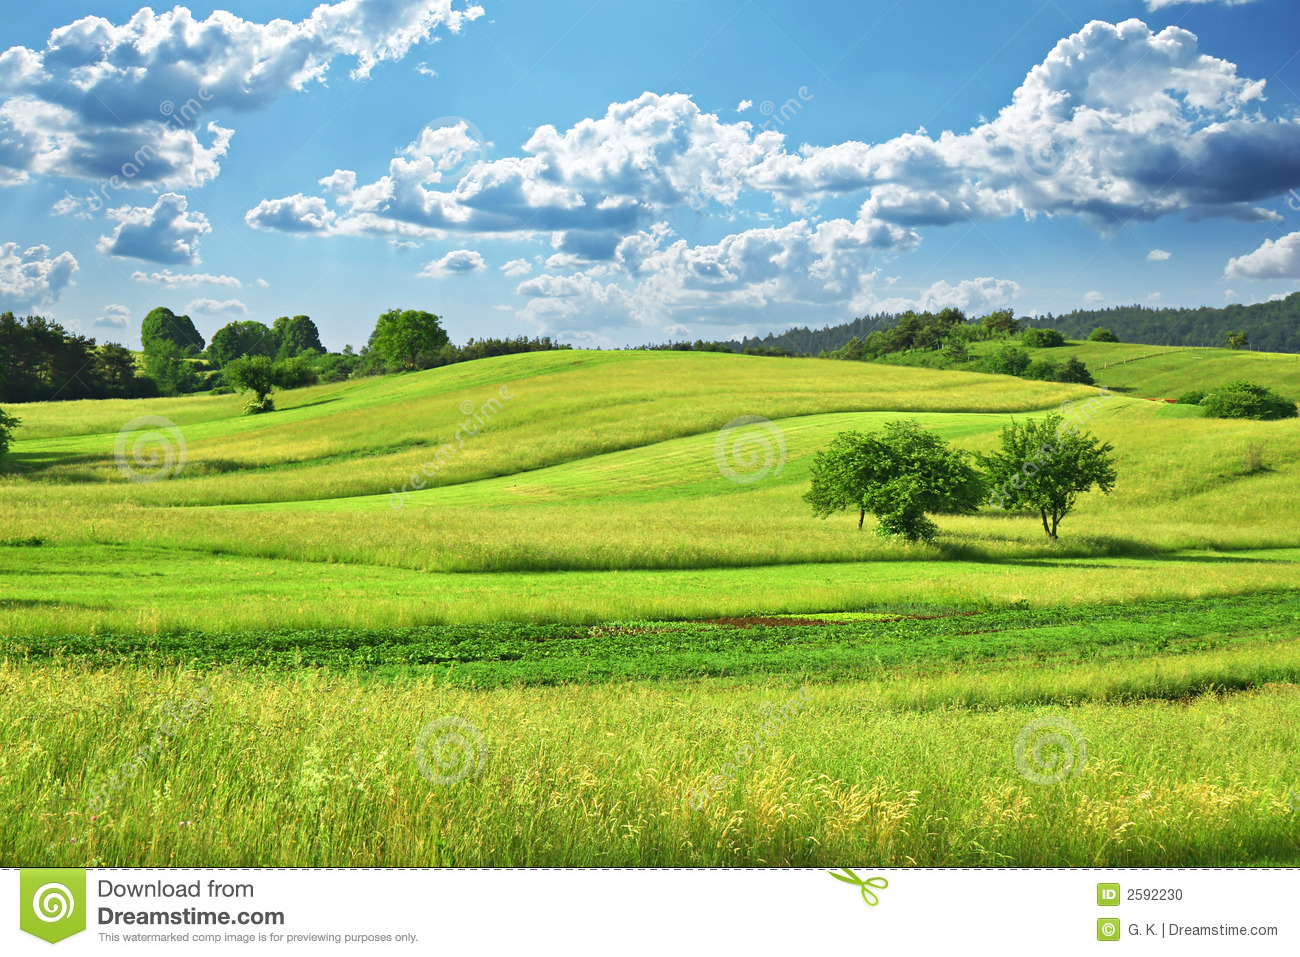 grass field clipart. royaltyfree stock photo download grass field clipart